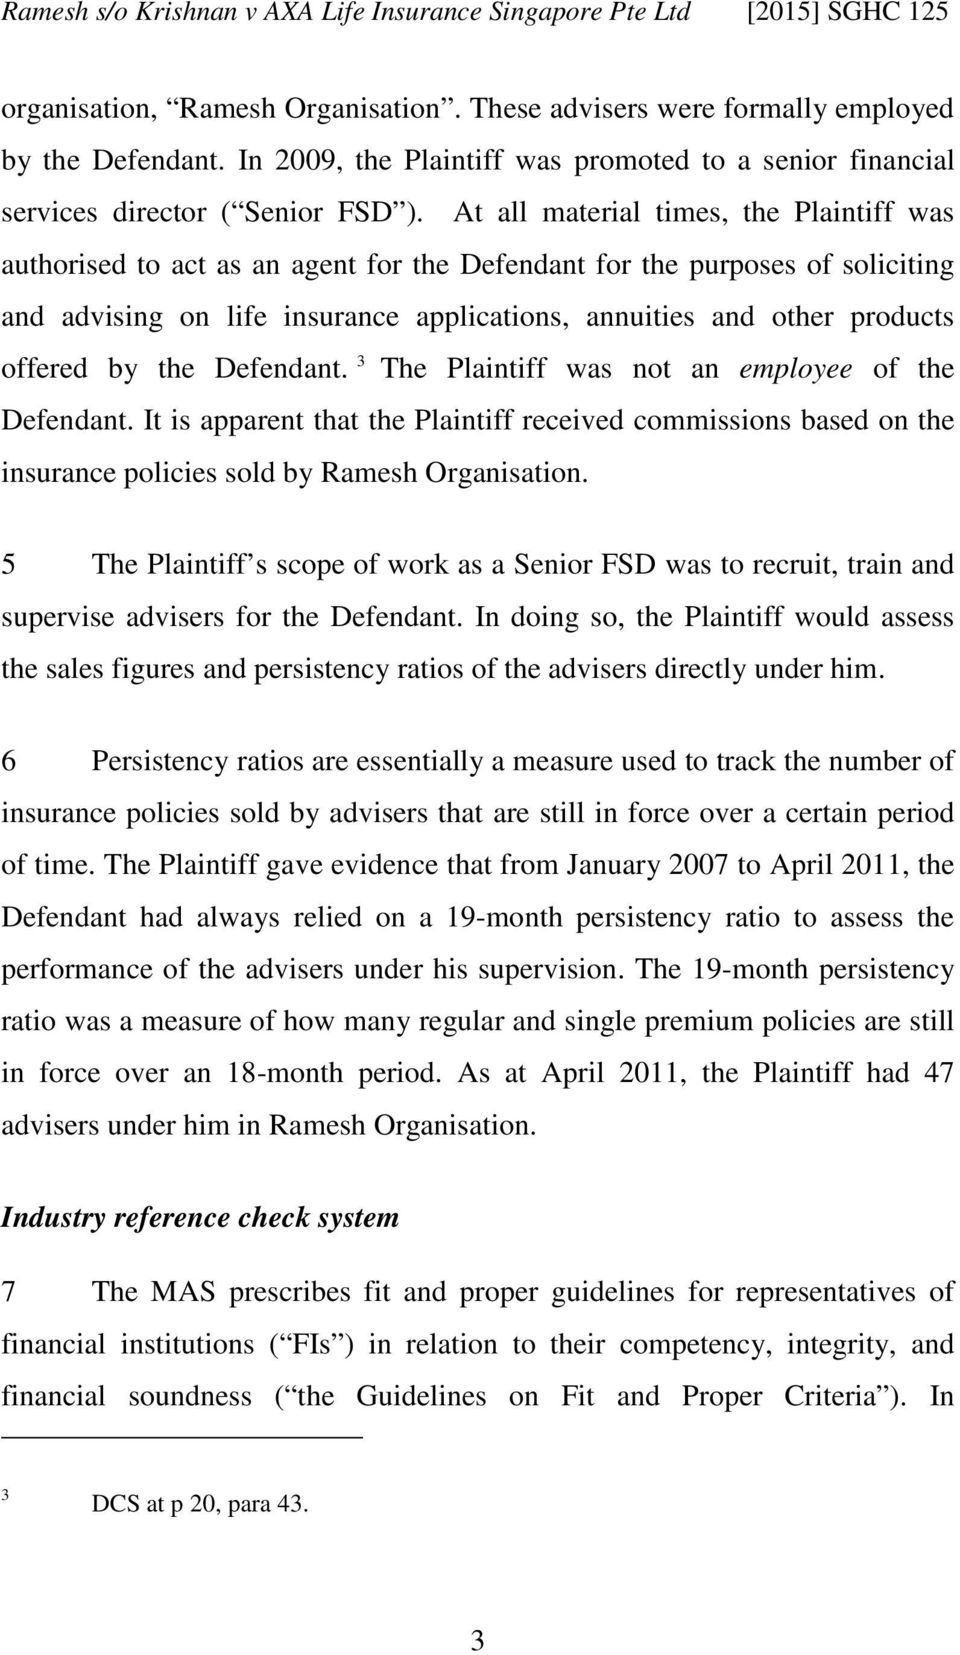 offered by the Defendant. 3 The Plaintiff was not an employee of the Defendant. It is apparent that the Plaintiff received commissions based on the insurance policies sold by Ramesh Organisation.